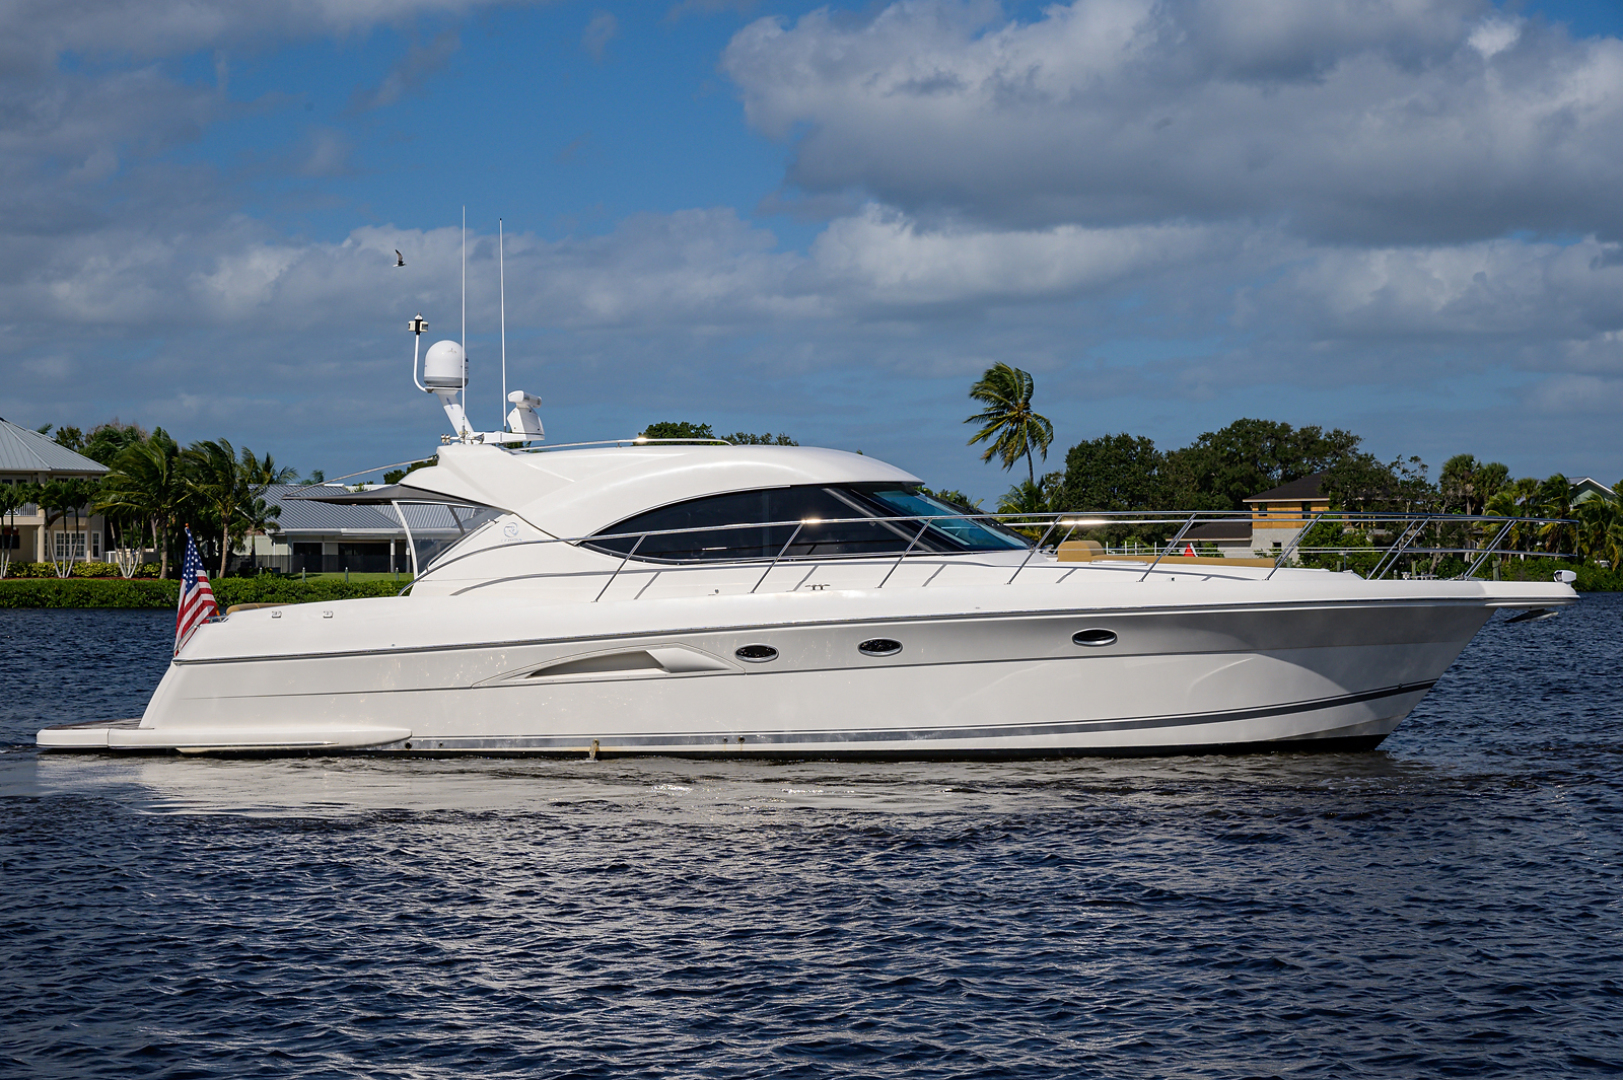 Riviera-5000 Sport Yacht 2012-Lady J Palm Beach-Florida-United States-1553489 | Thumbnail